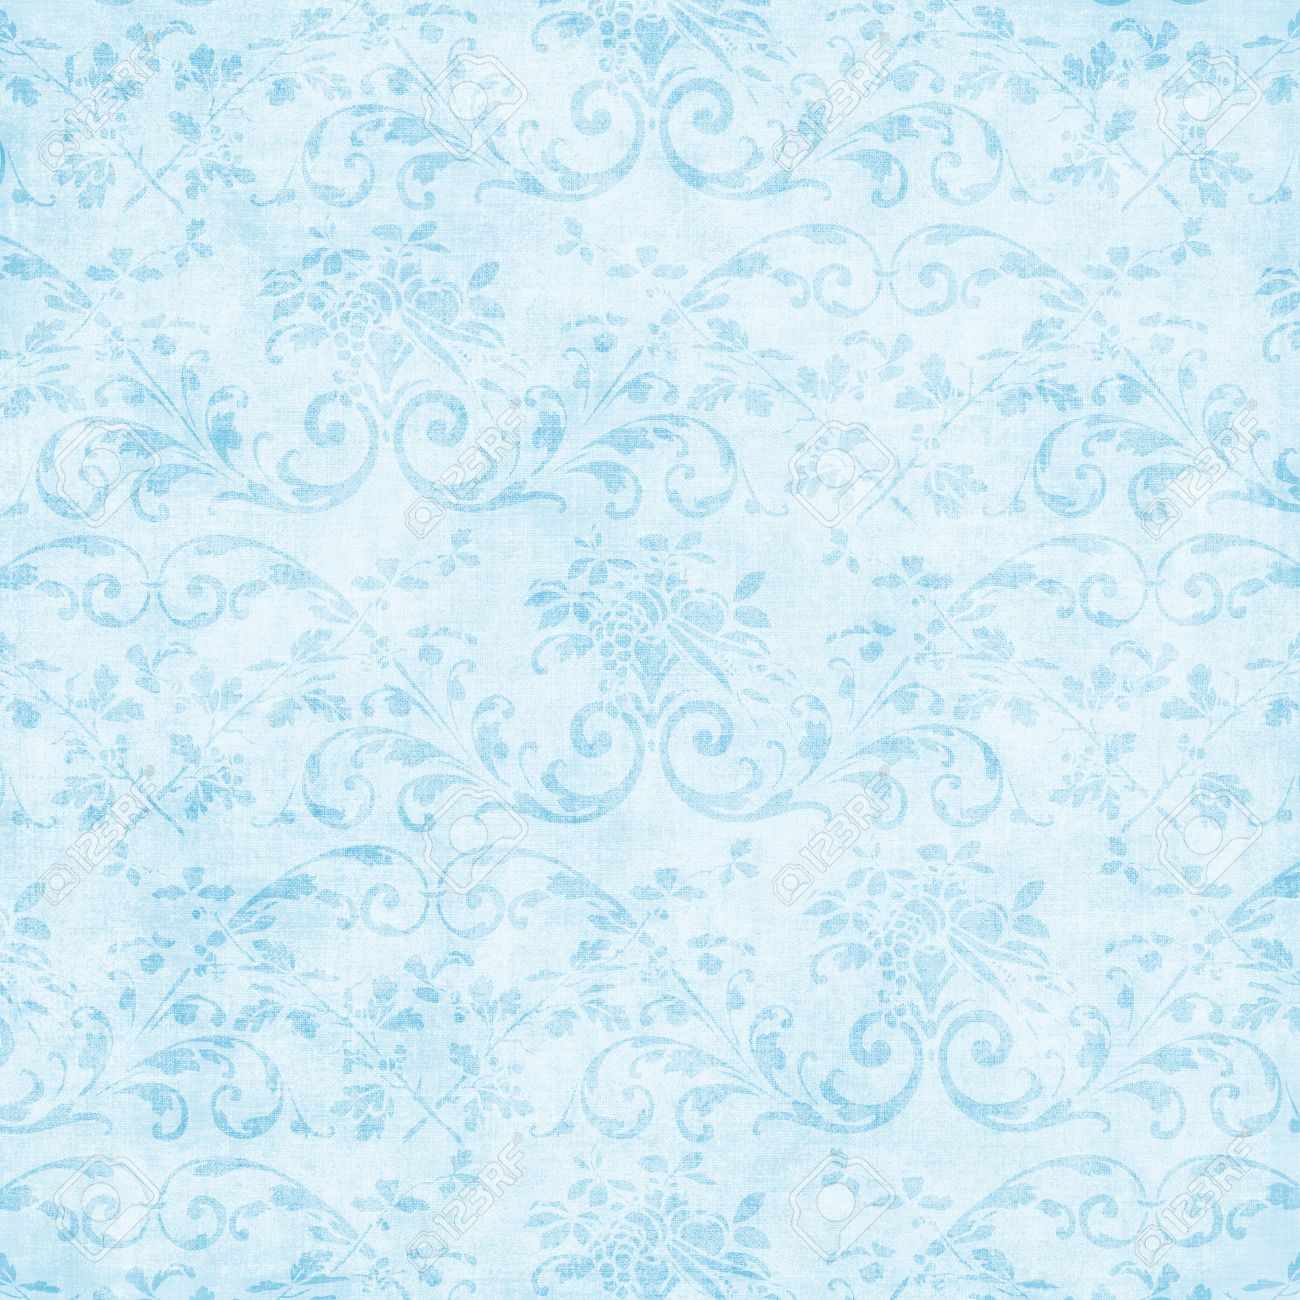 Vintage Light Blue Floral Tapestry Stock Photo Picture And